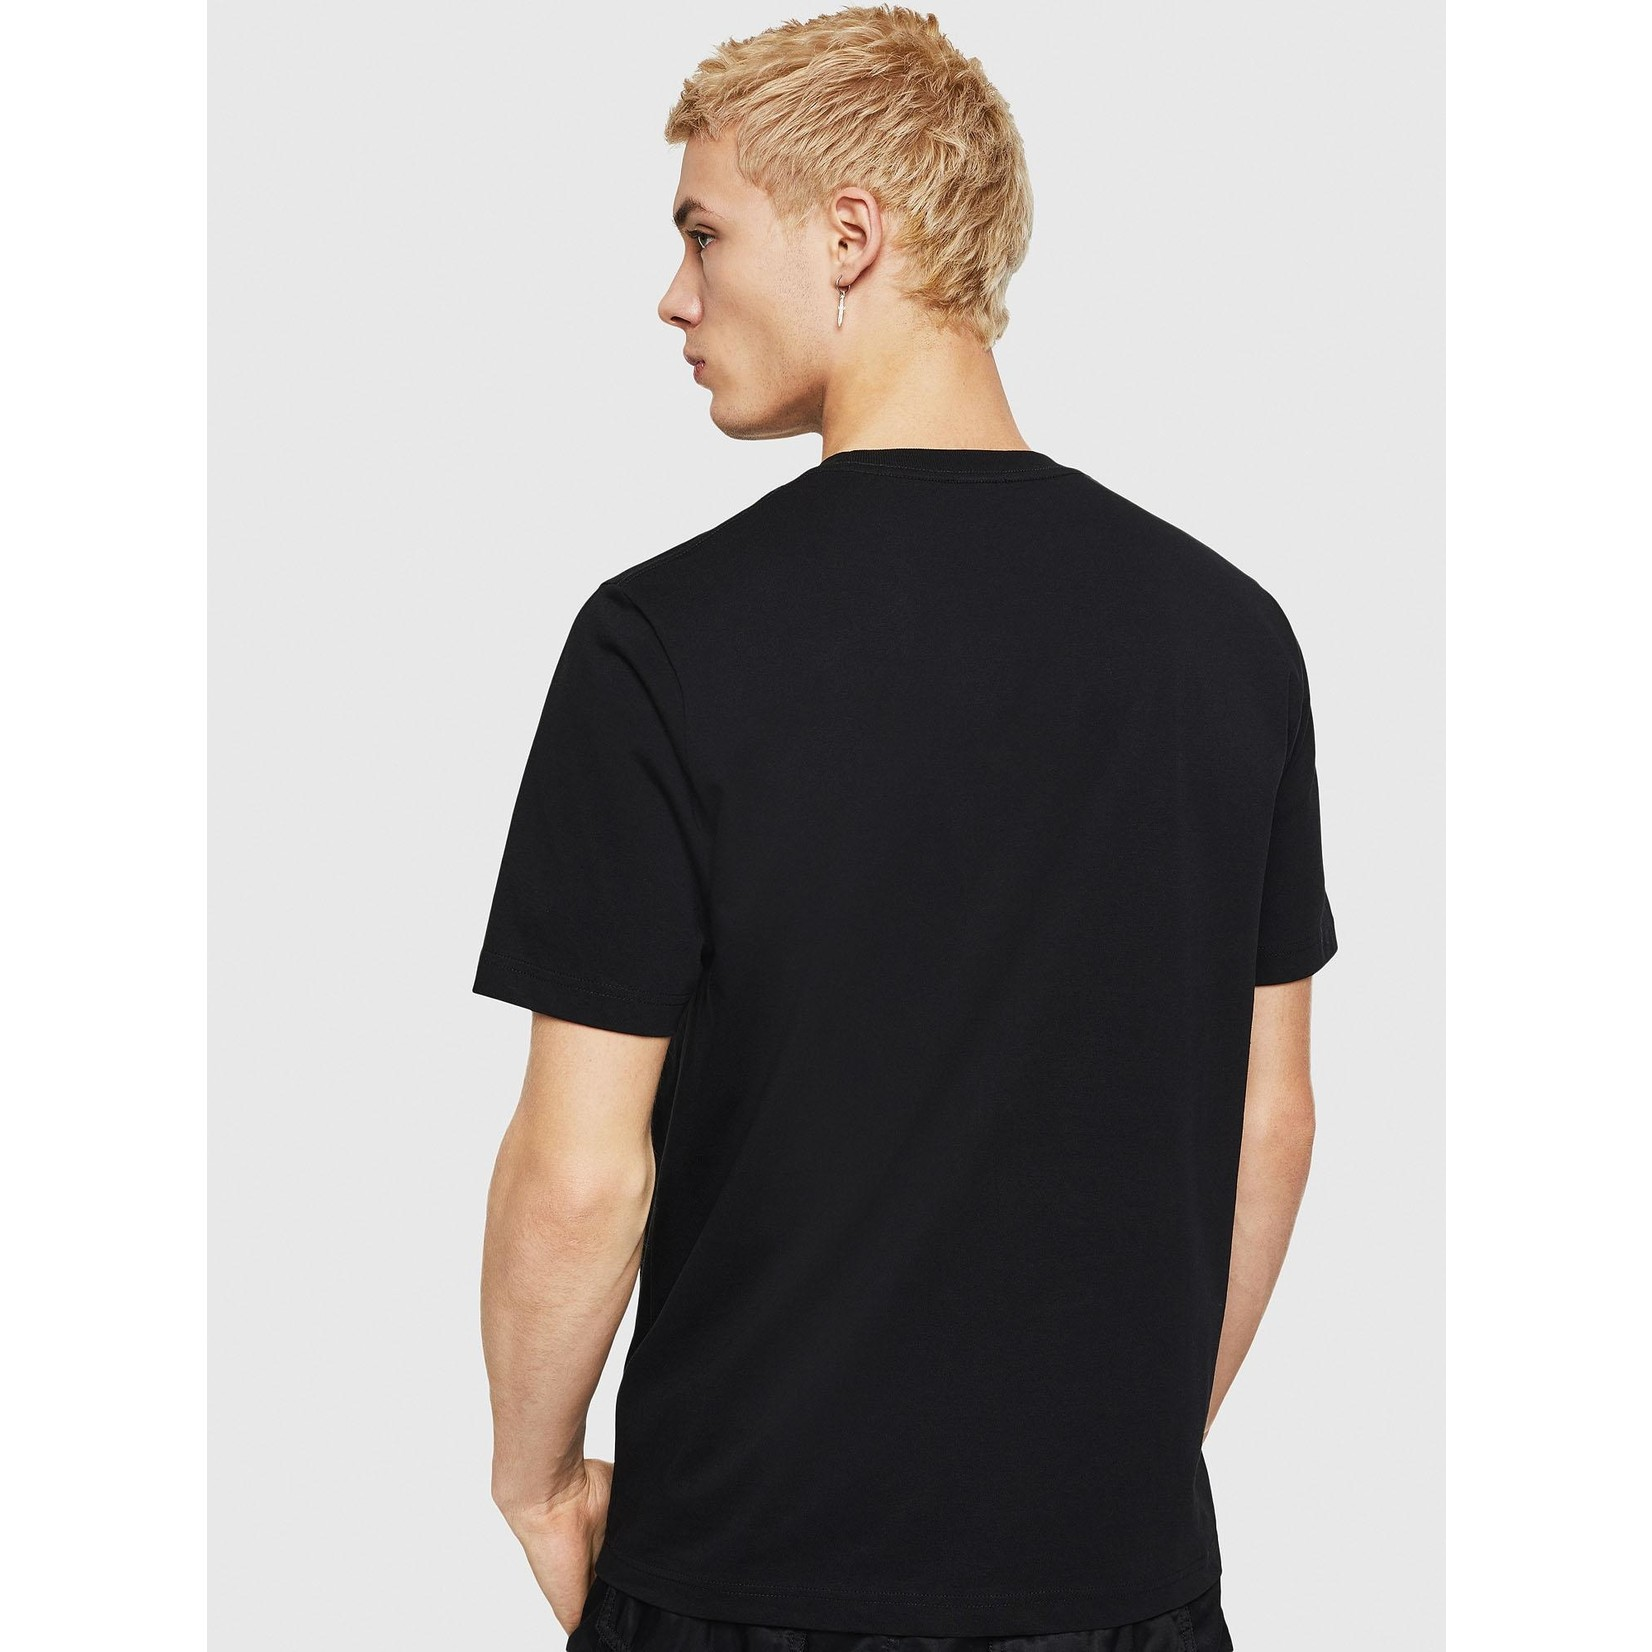 DIESEL DIESEL T-SHIRT T-JUST A5 - BLACK